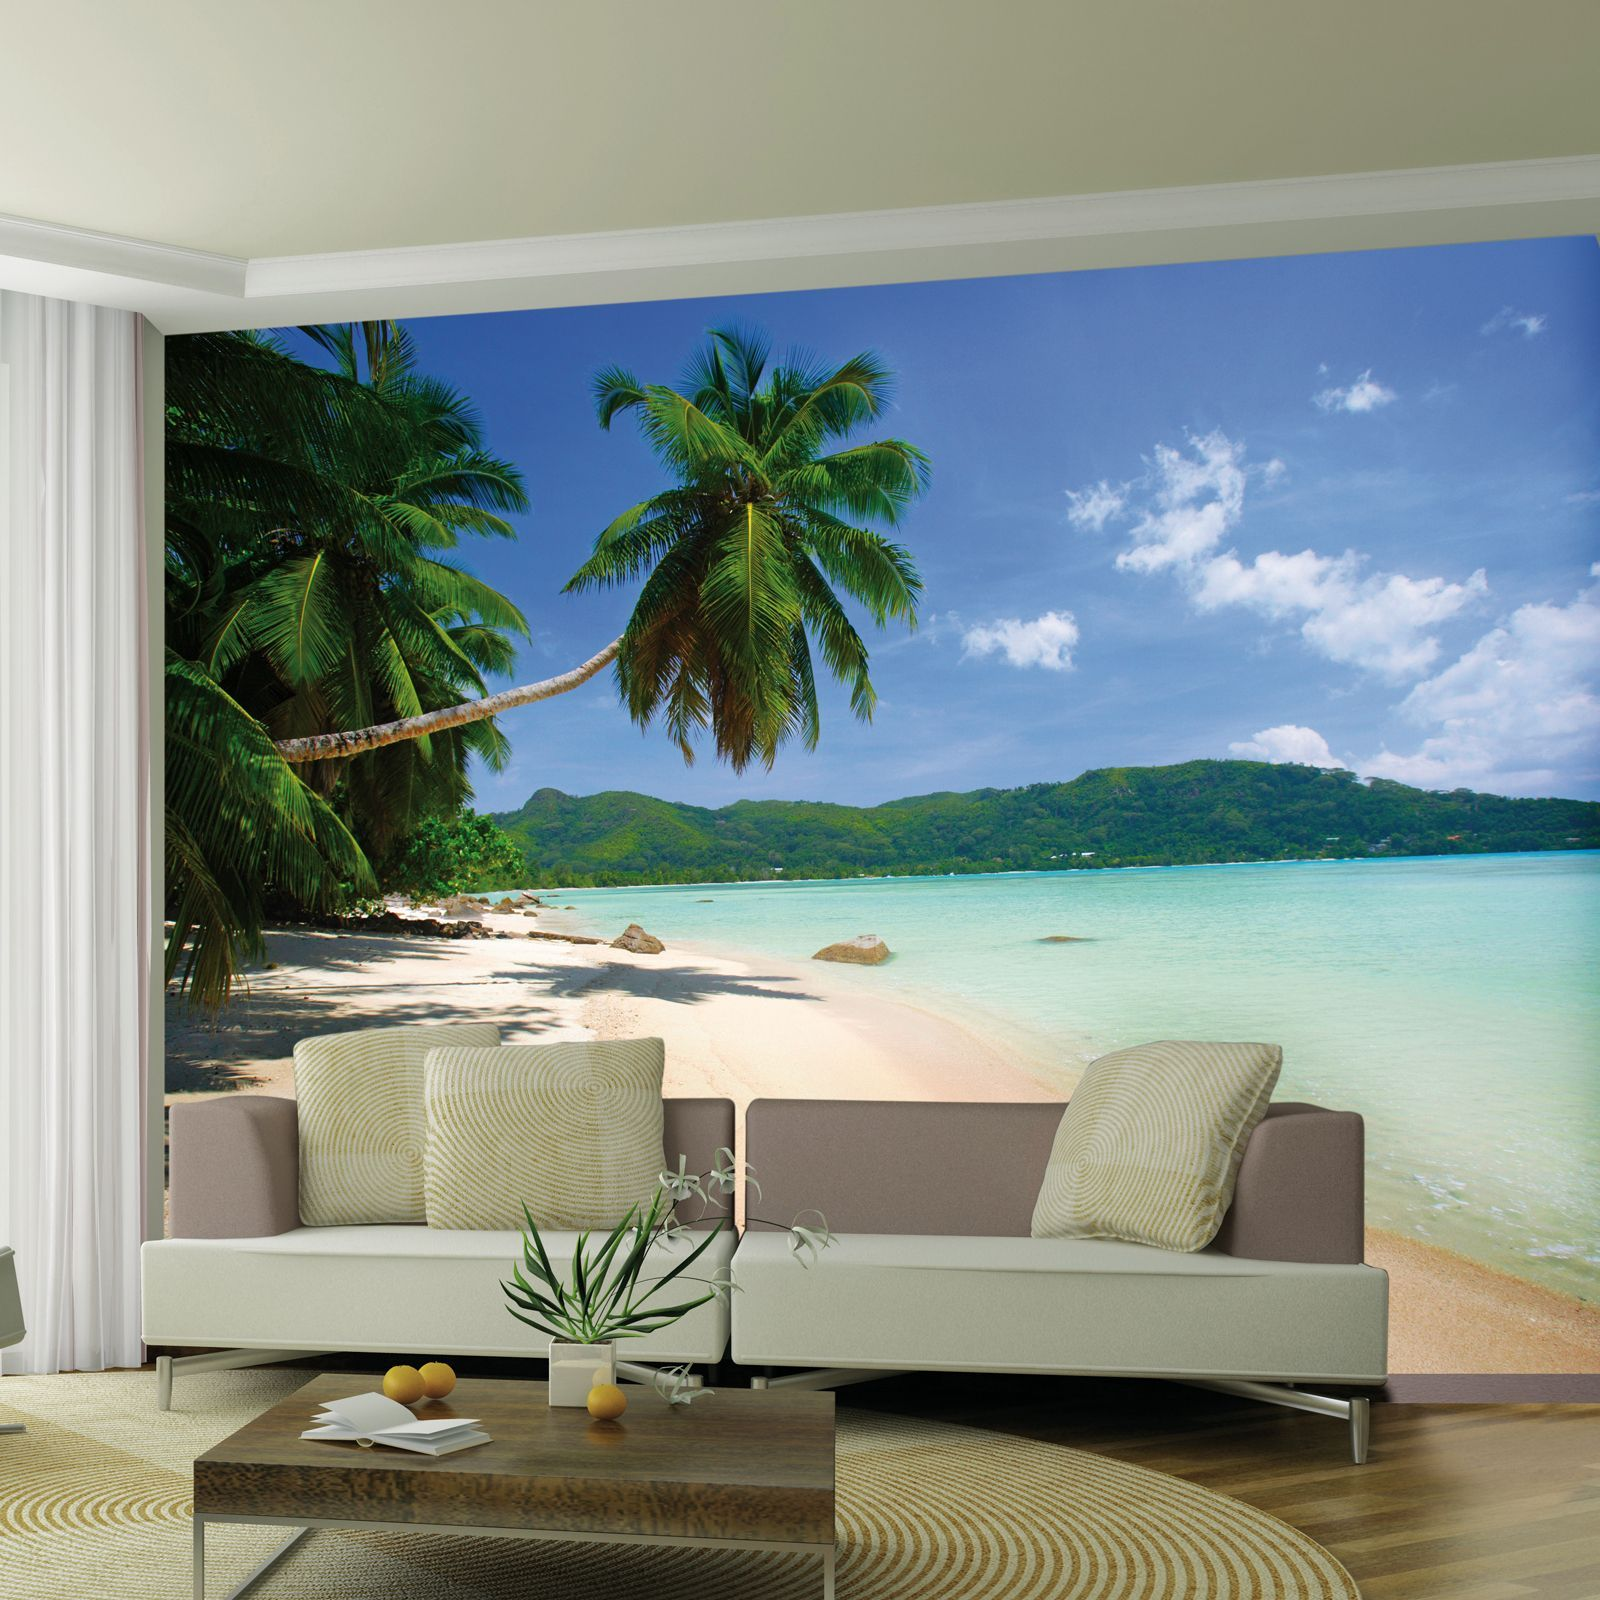 Large wallpaper feature wall murals landscapes for Wall art wallpaper